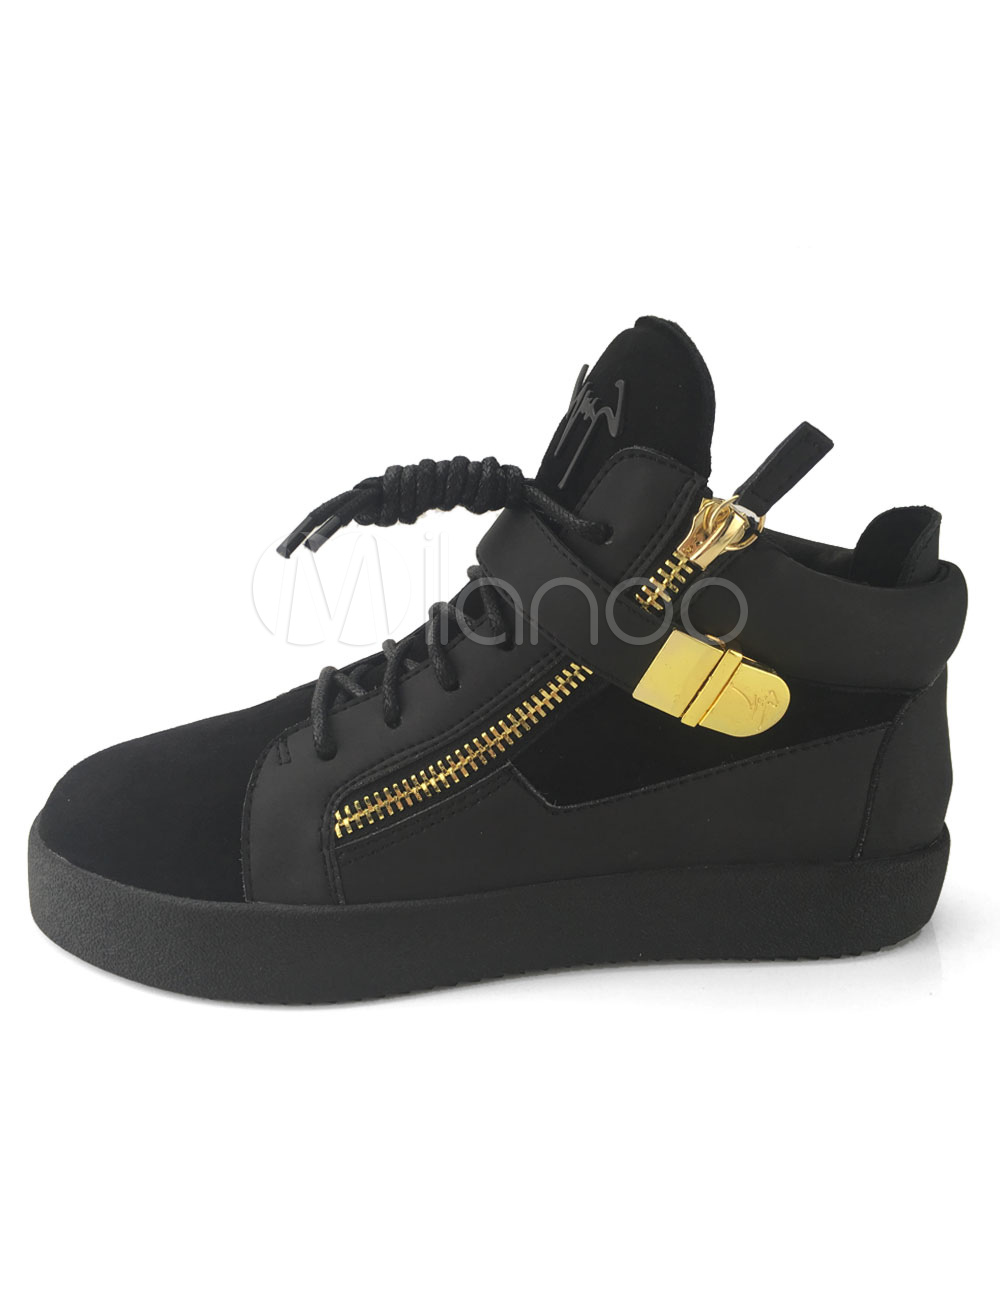 Buy Black Skate Shoes Leather Round Toe Lace Up Metal Detail High Top Sneakers for $78.84 in Milanoo store